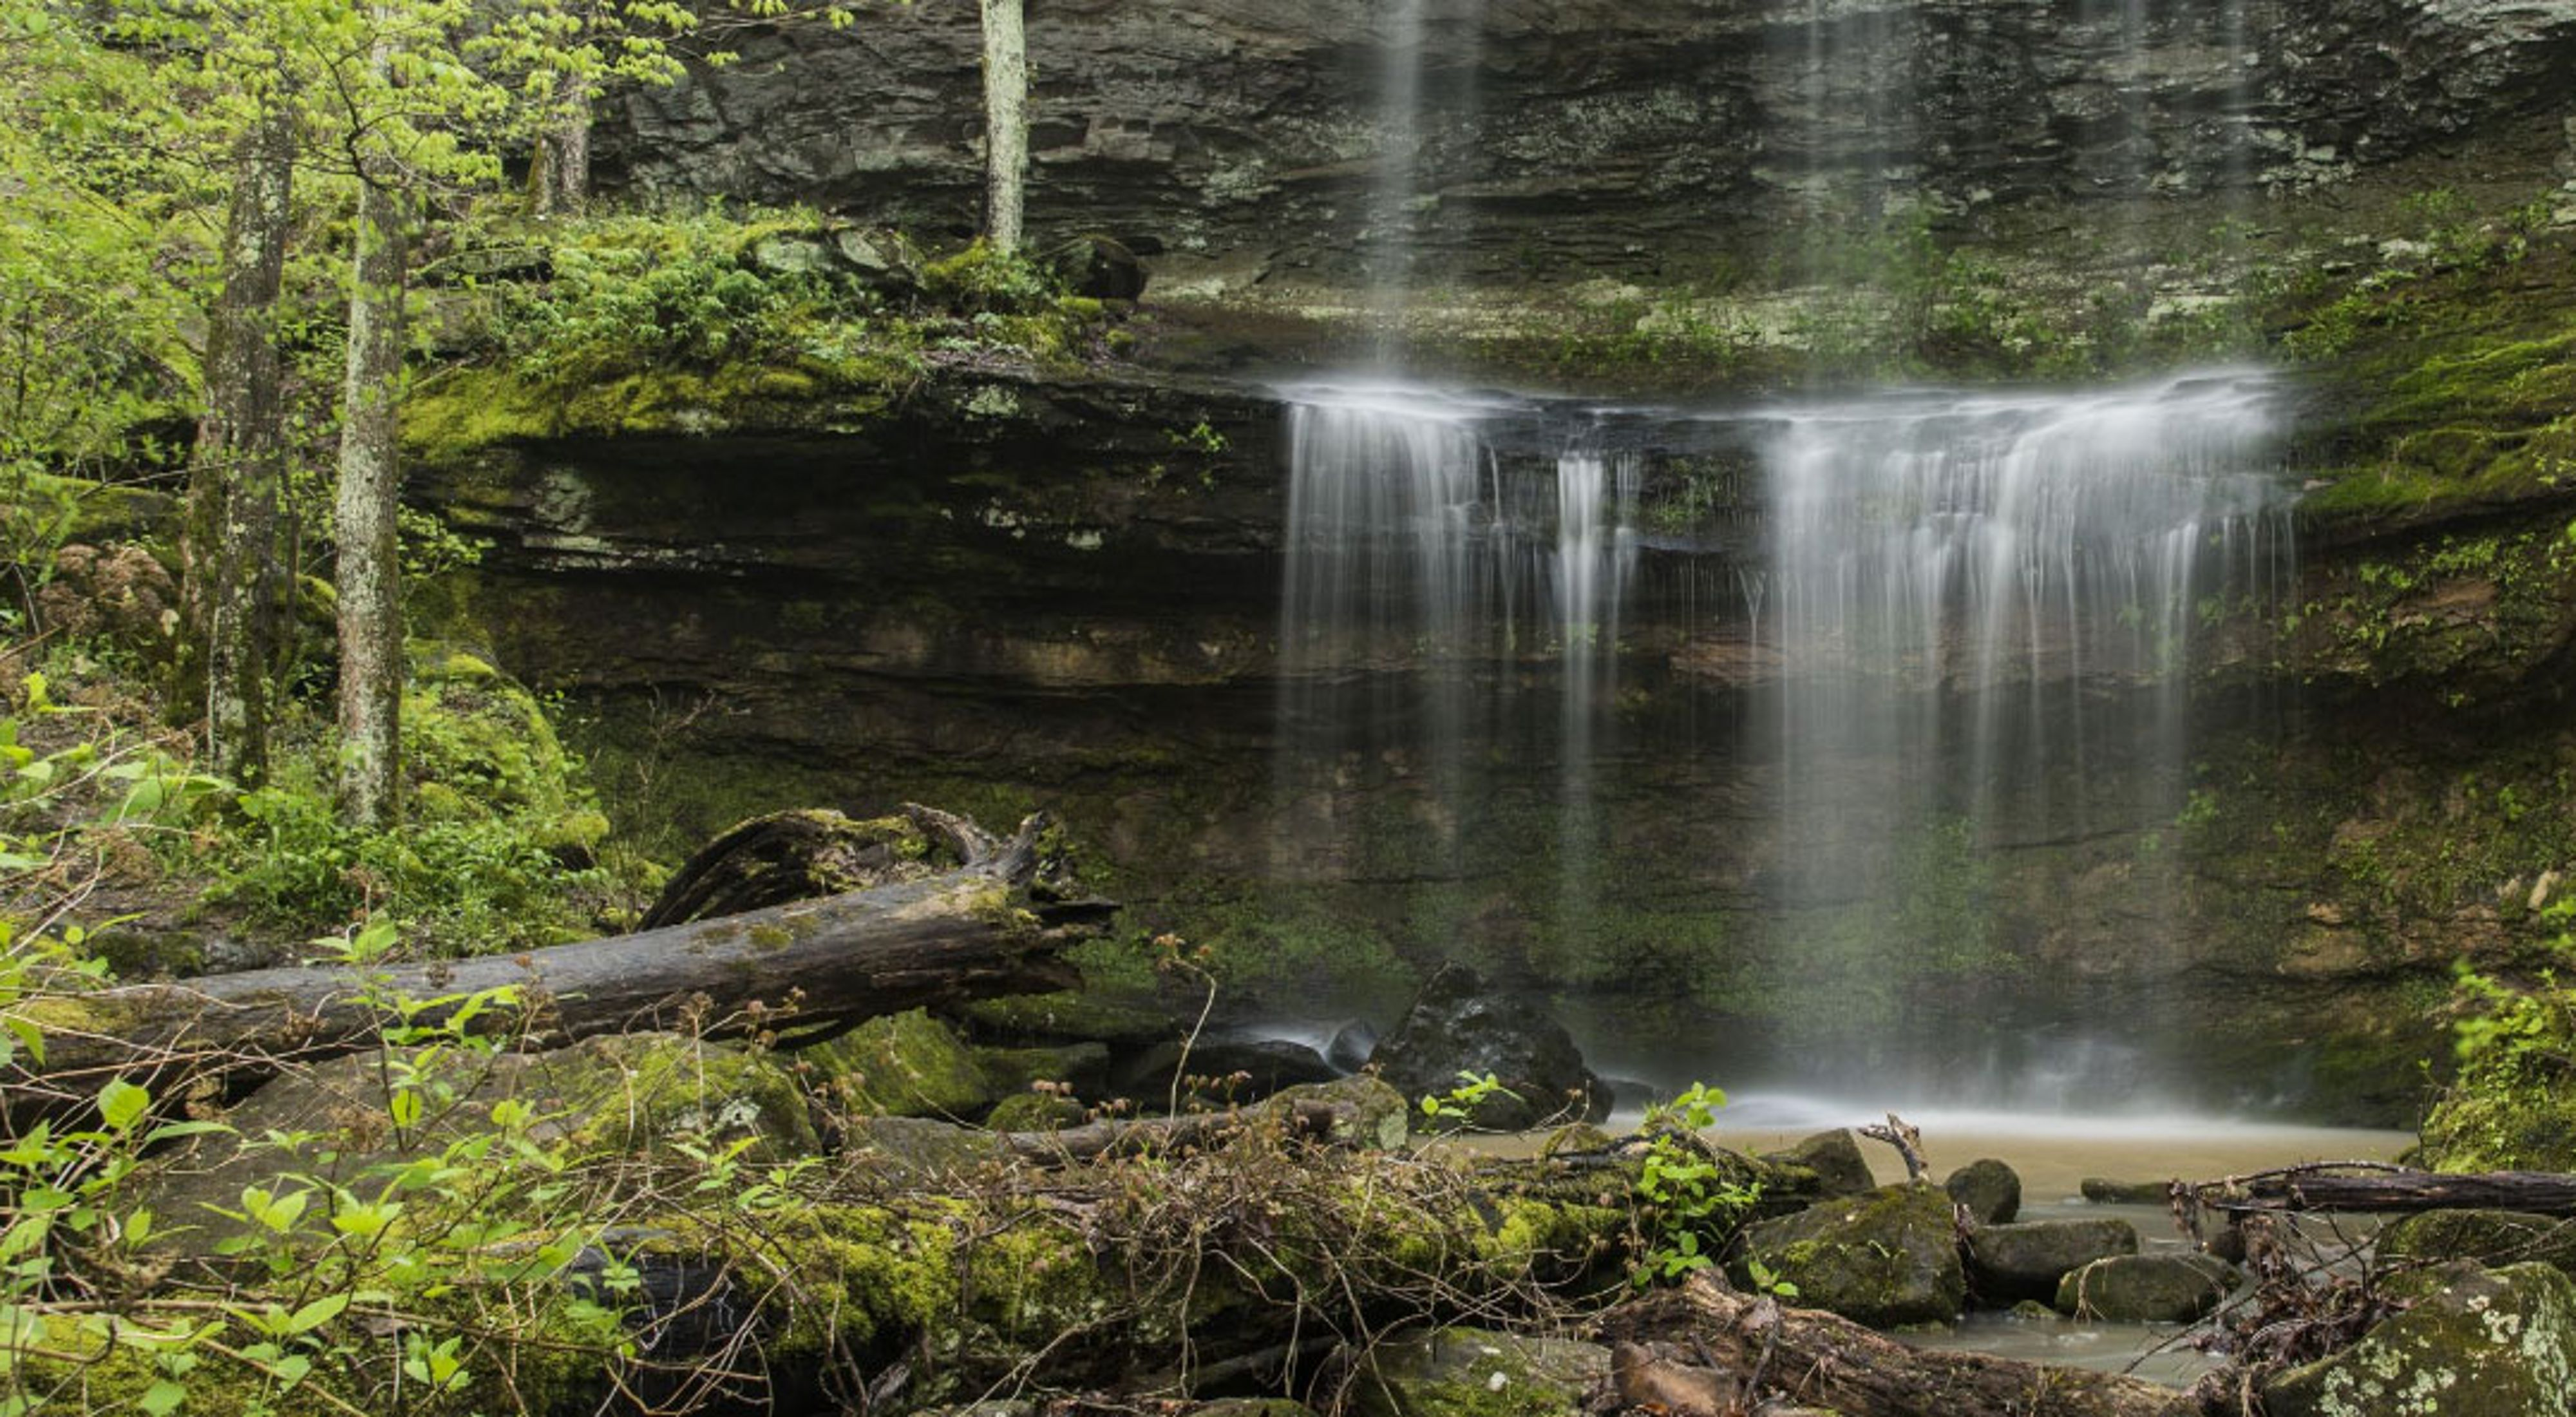 Waterfall at Crab Orchard National Wildlife Refuge.